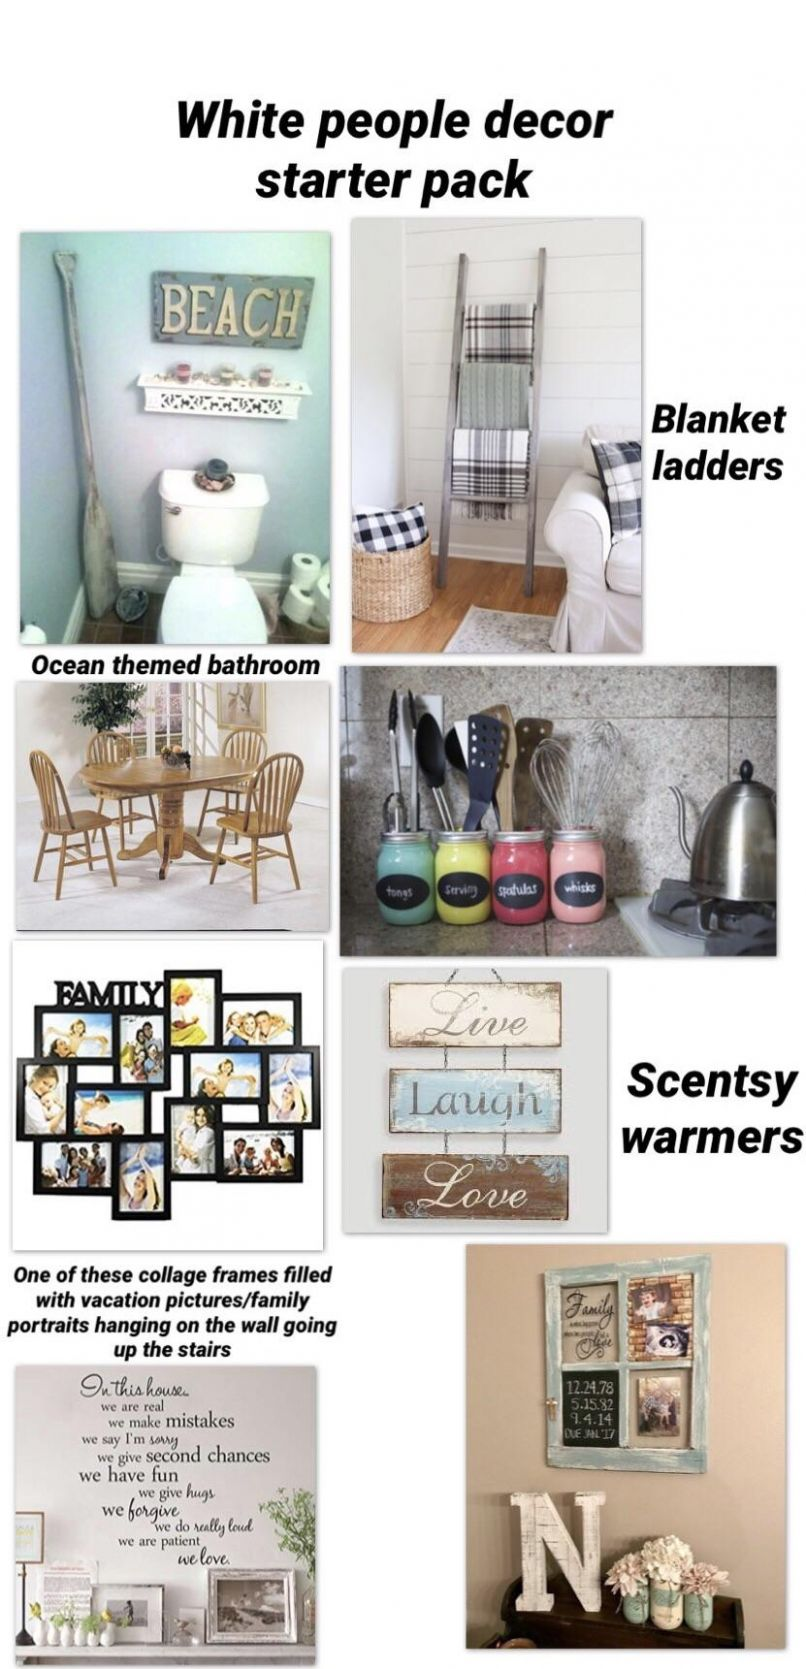 White people house decor starter pack